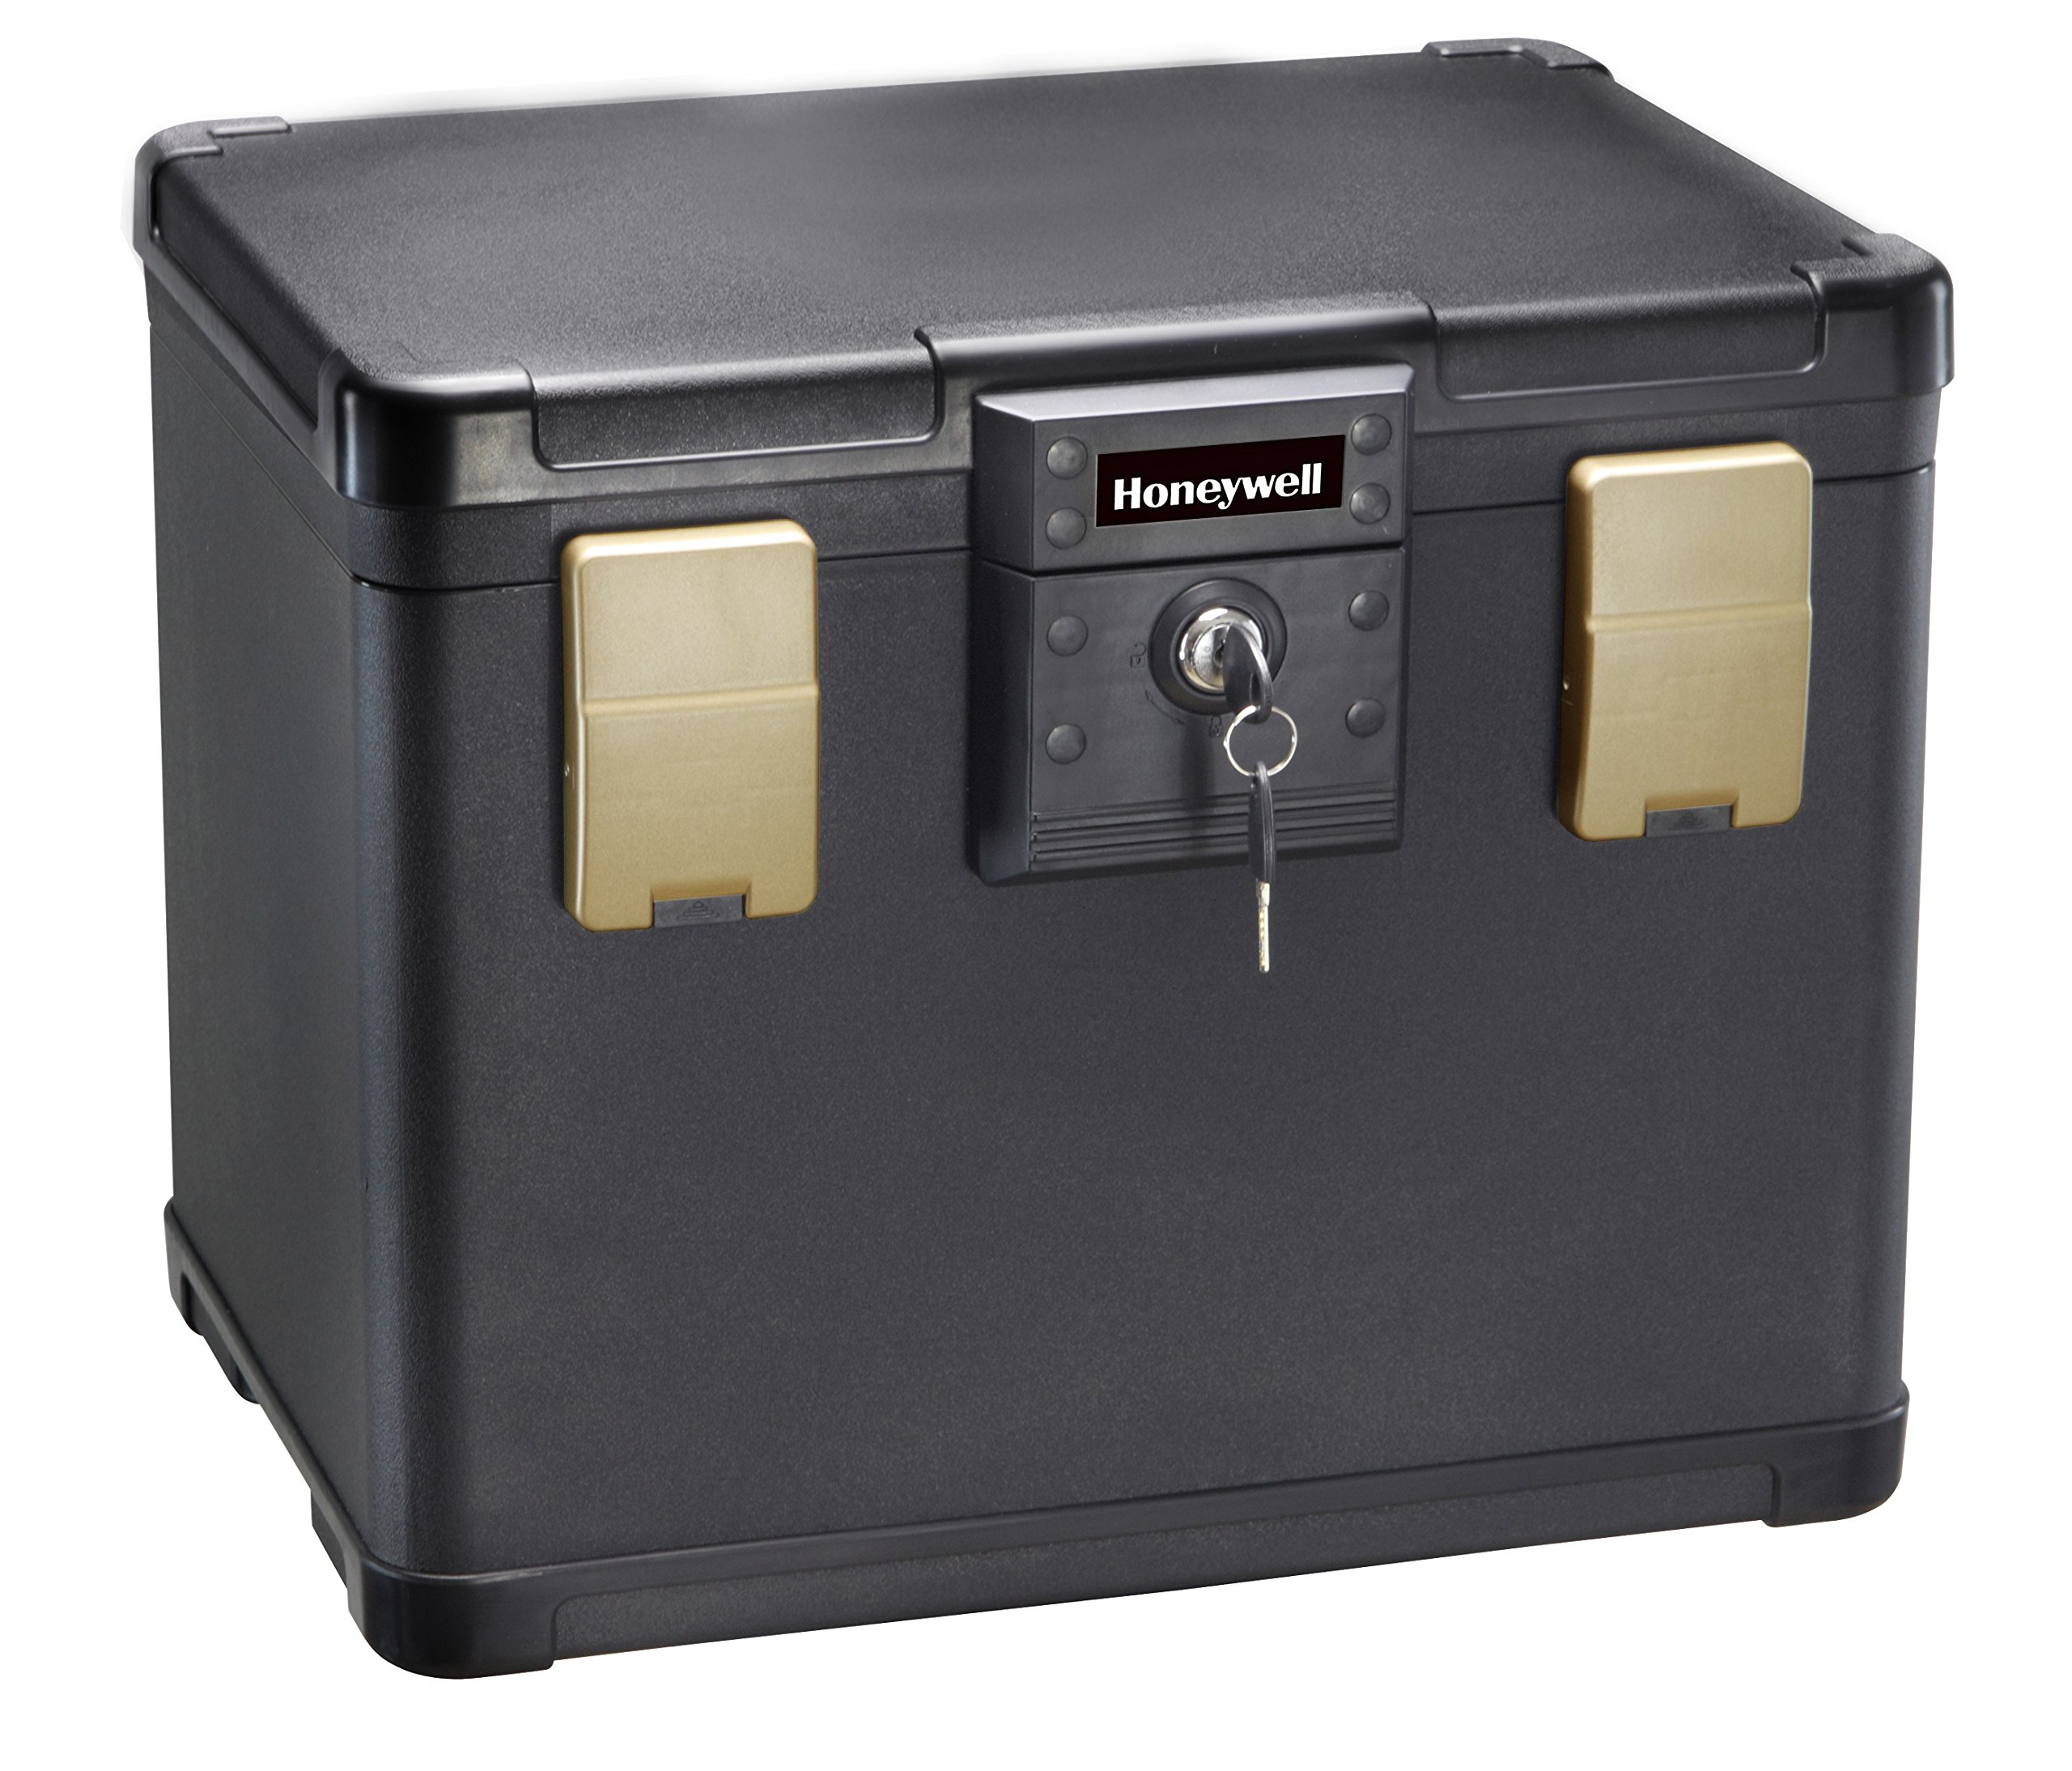 Honeywell 30 Minute Fire Safe Waterproof Filing Safe Box Chest fits Letter and A4 Files, Medium, 1106